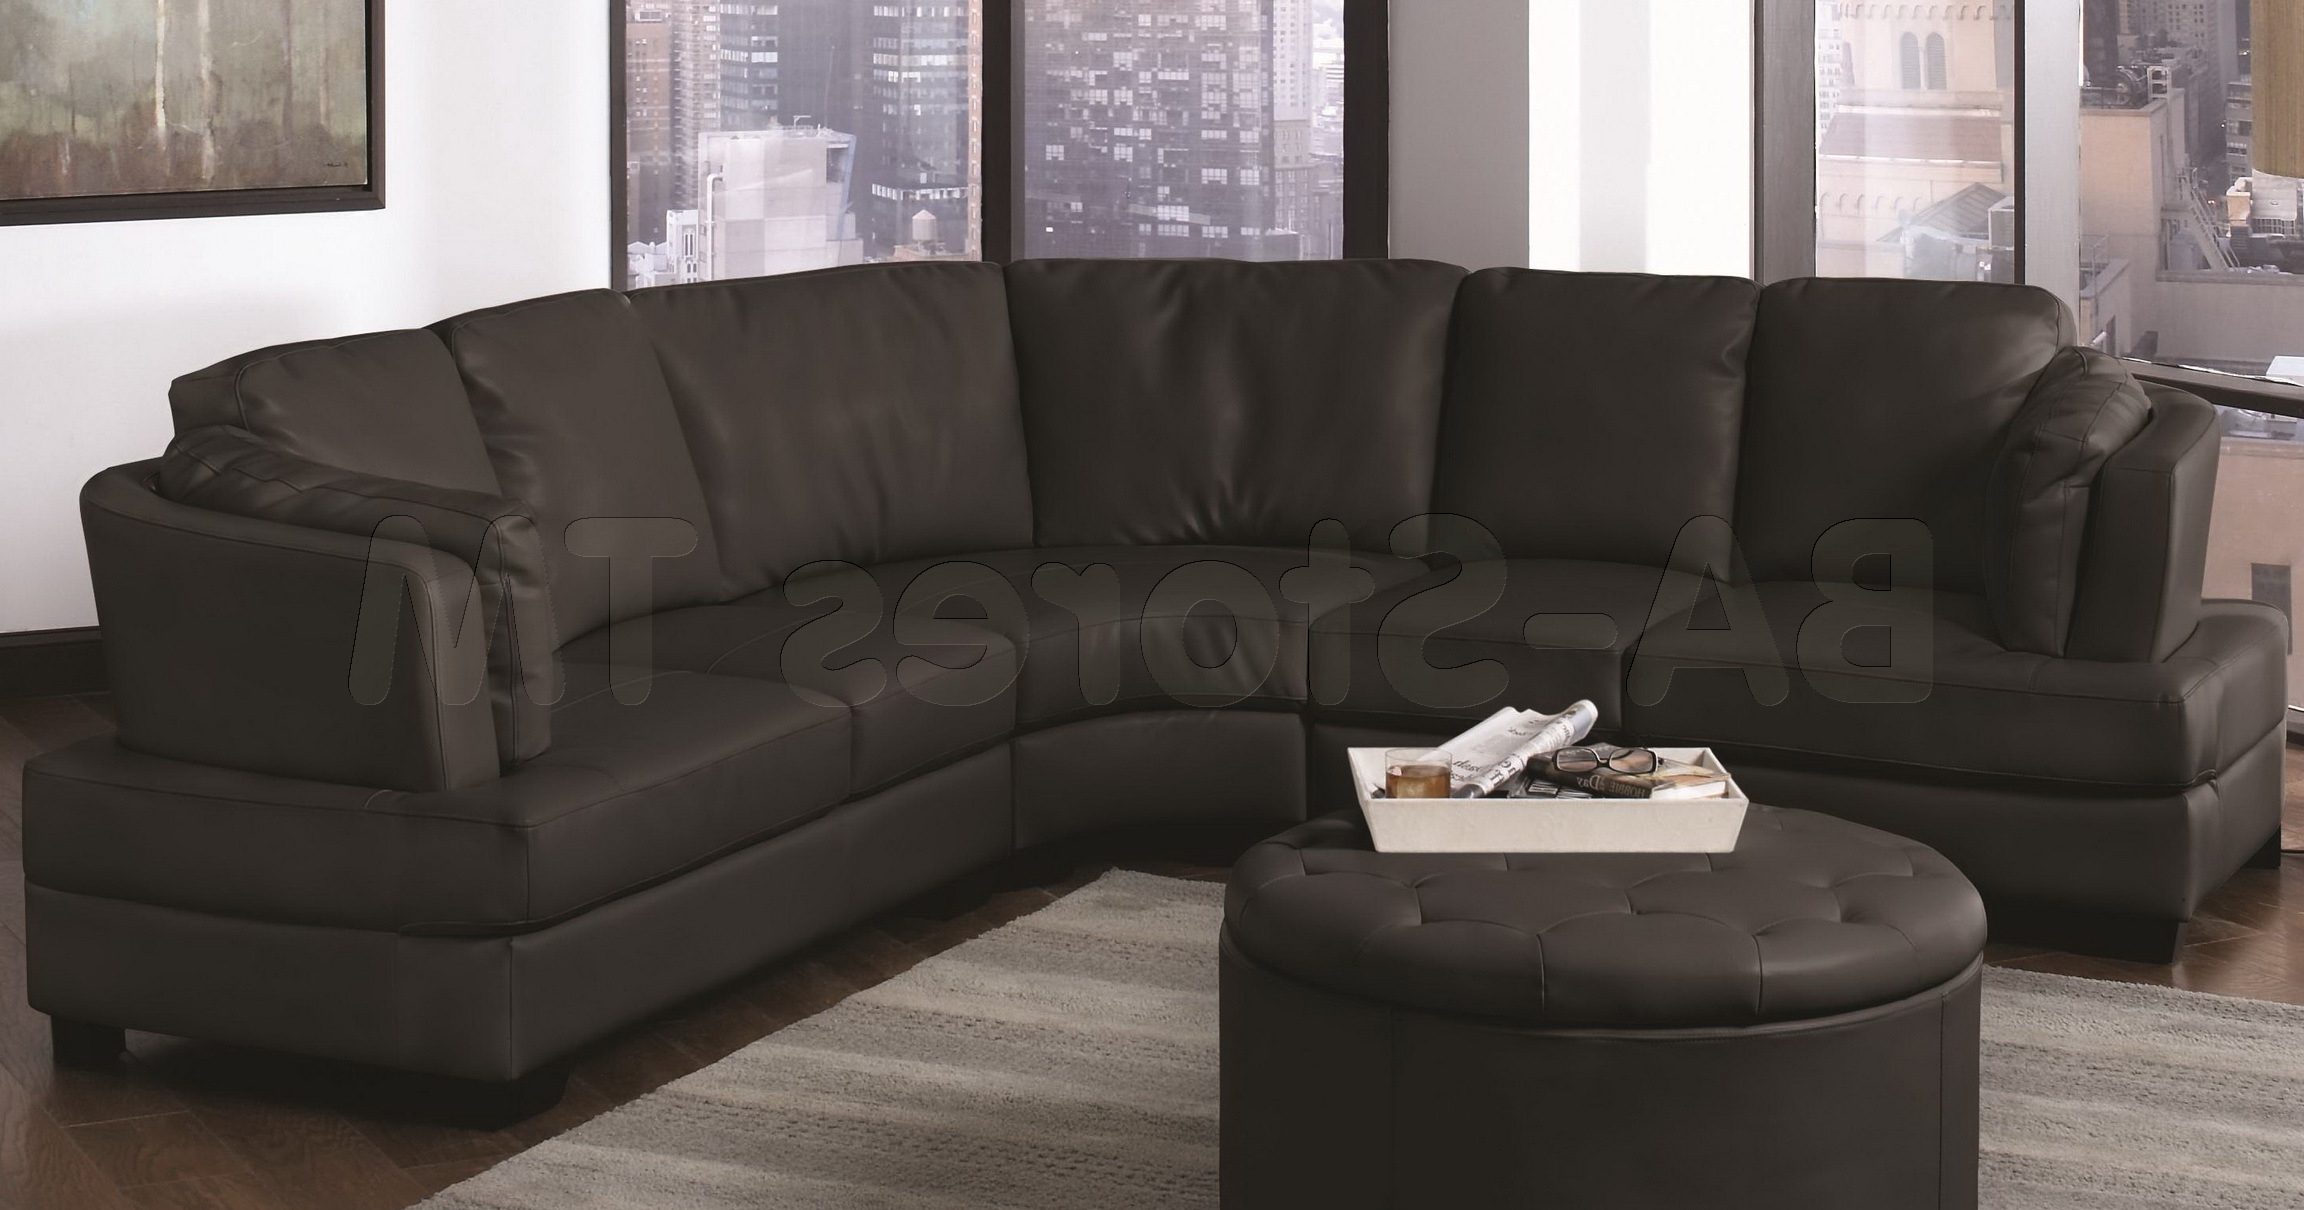 Popular Rounded Sofas With Regard To Trend Curved Sectional Sofa 99 On Contemporary Sofa Inspiration (View 19 of 20)